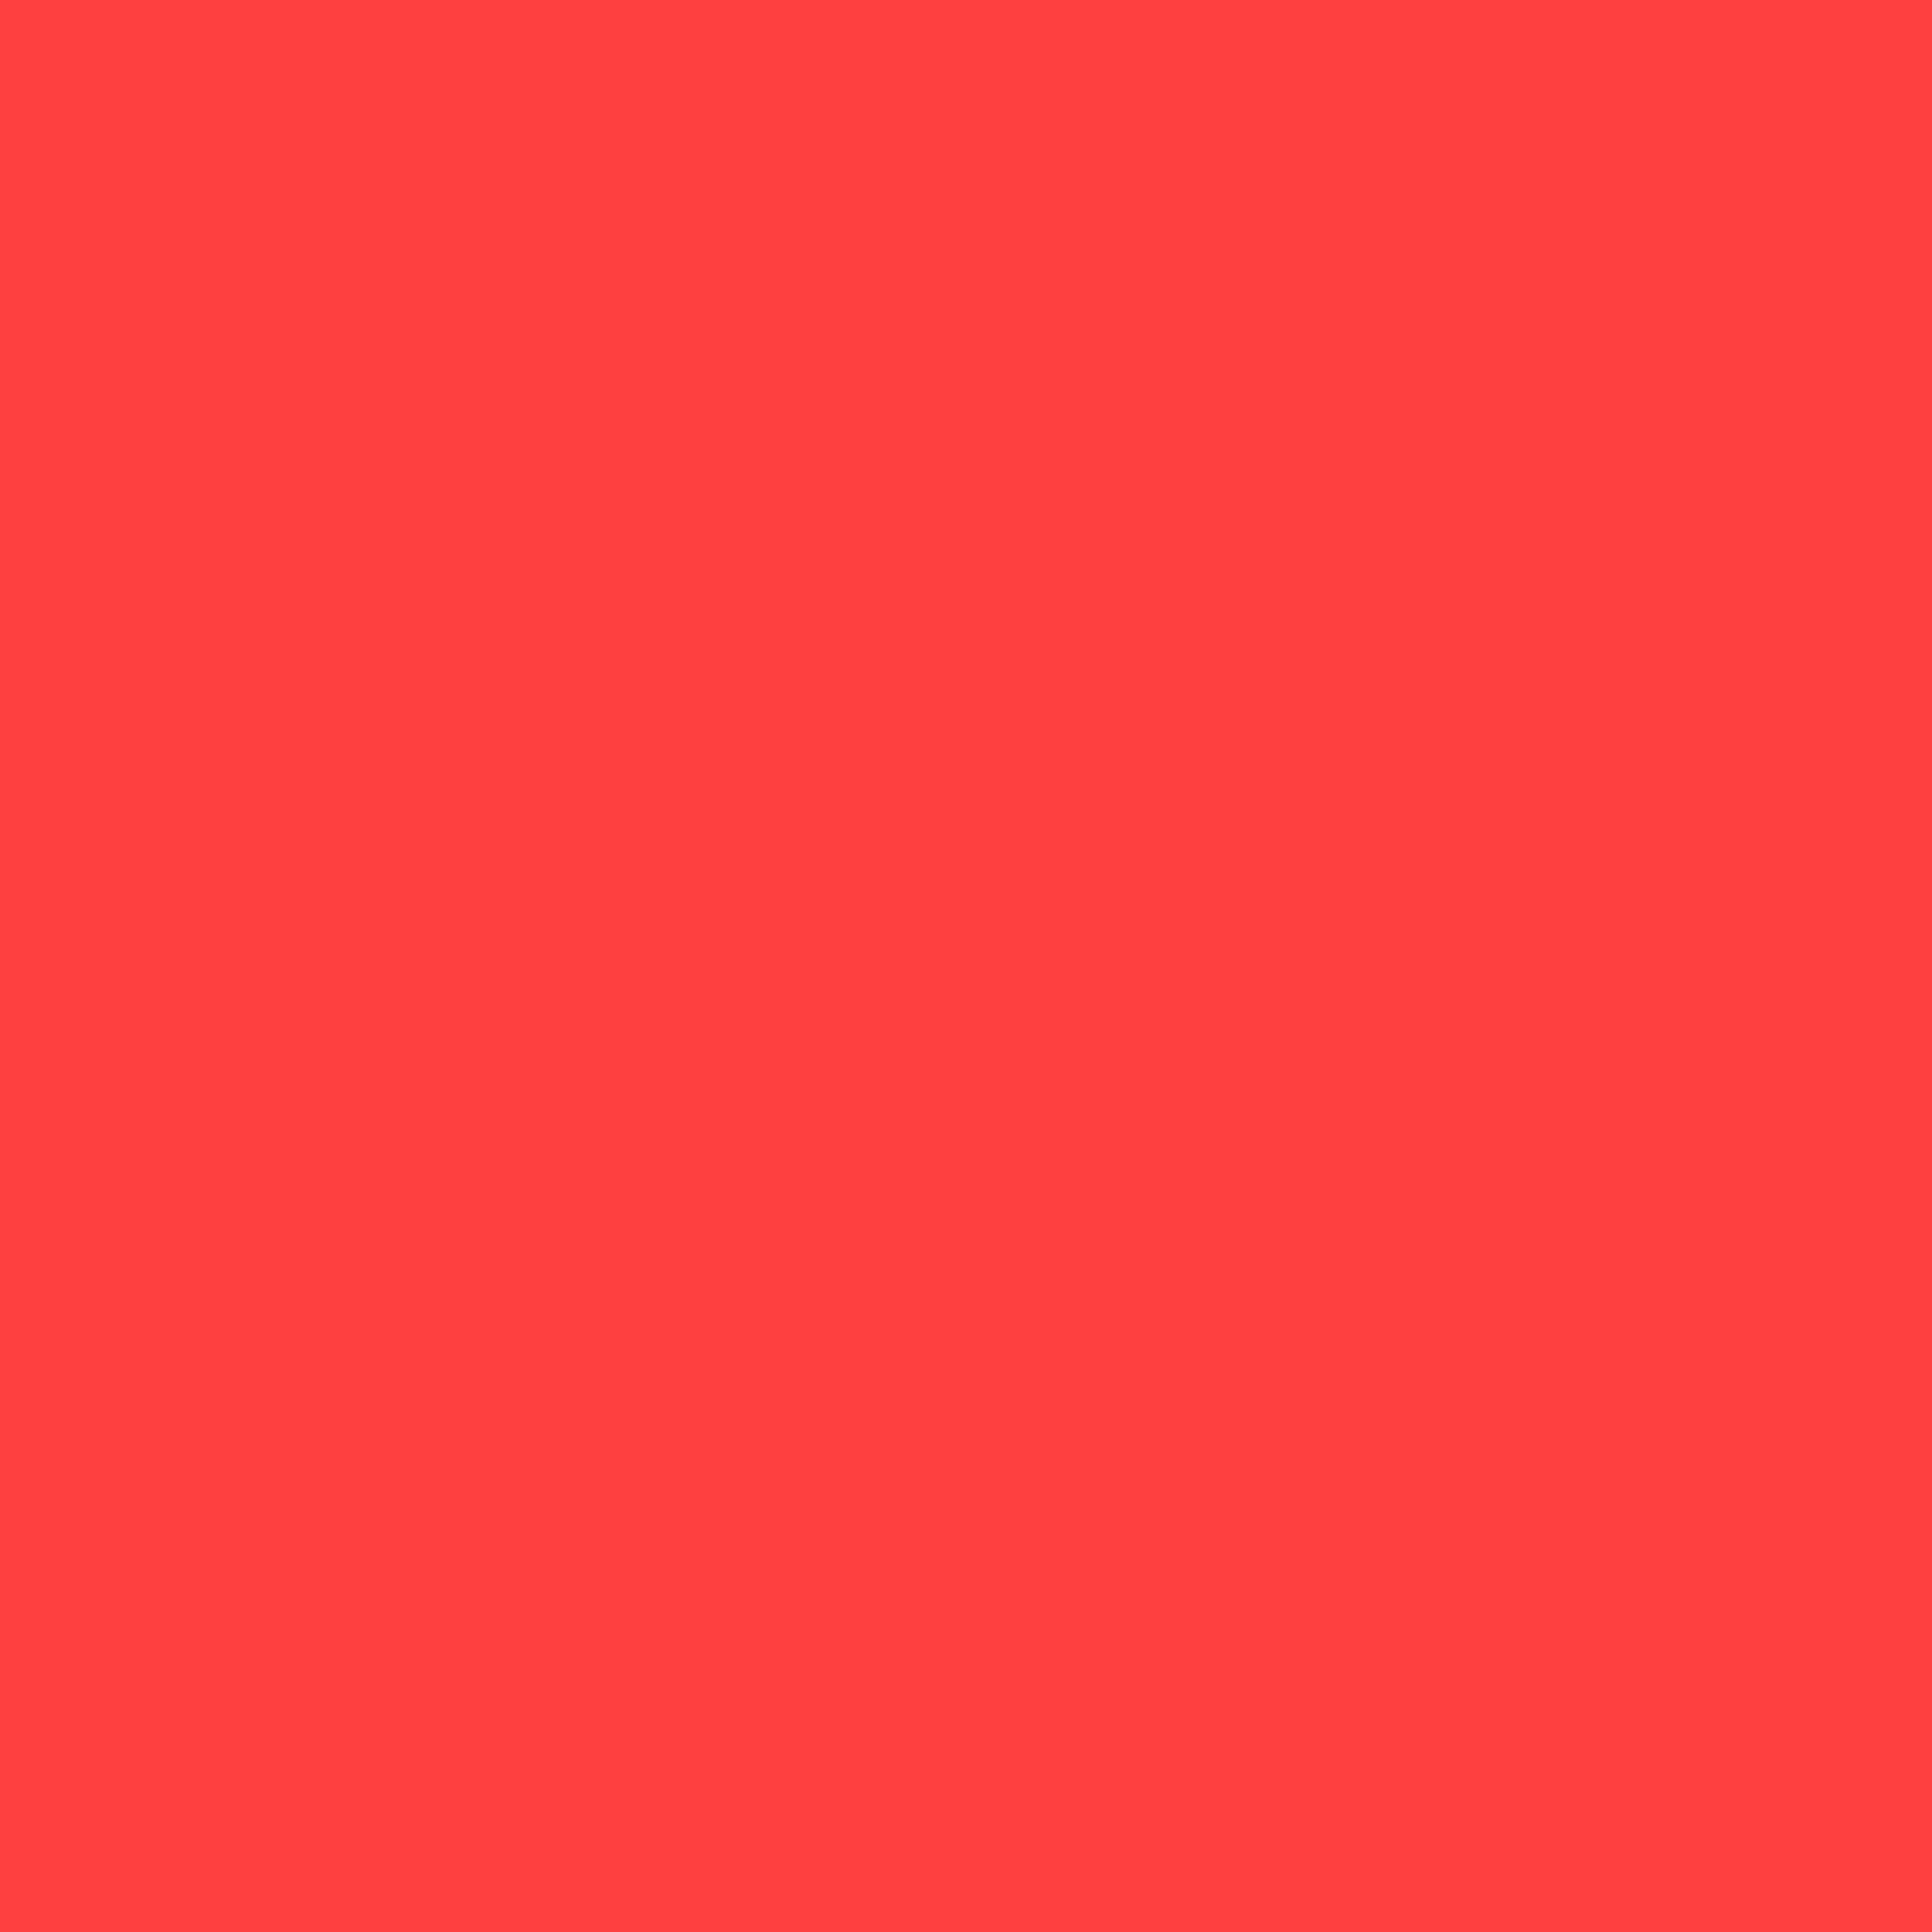 2732x2732 Coral Red Solid Color Background